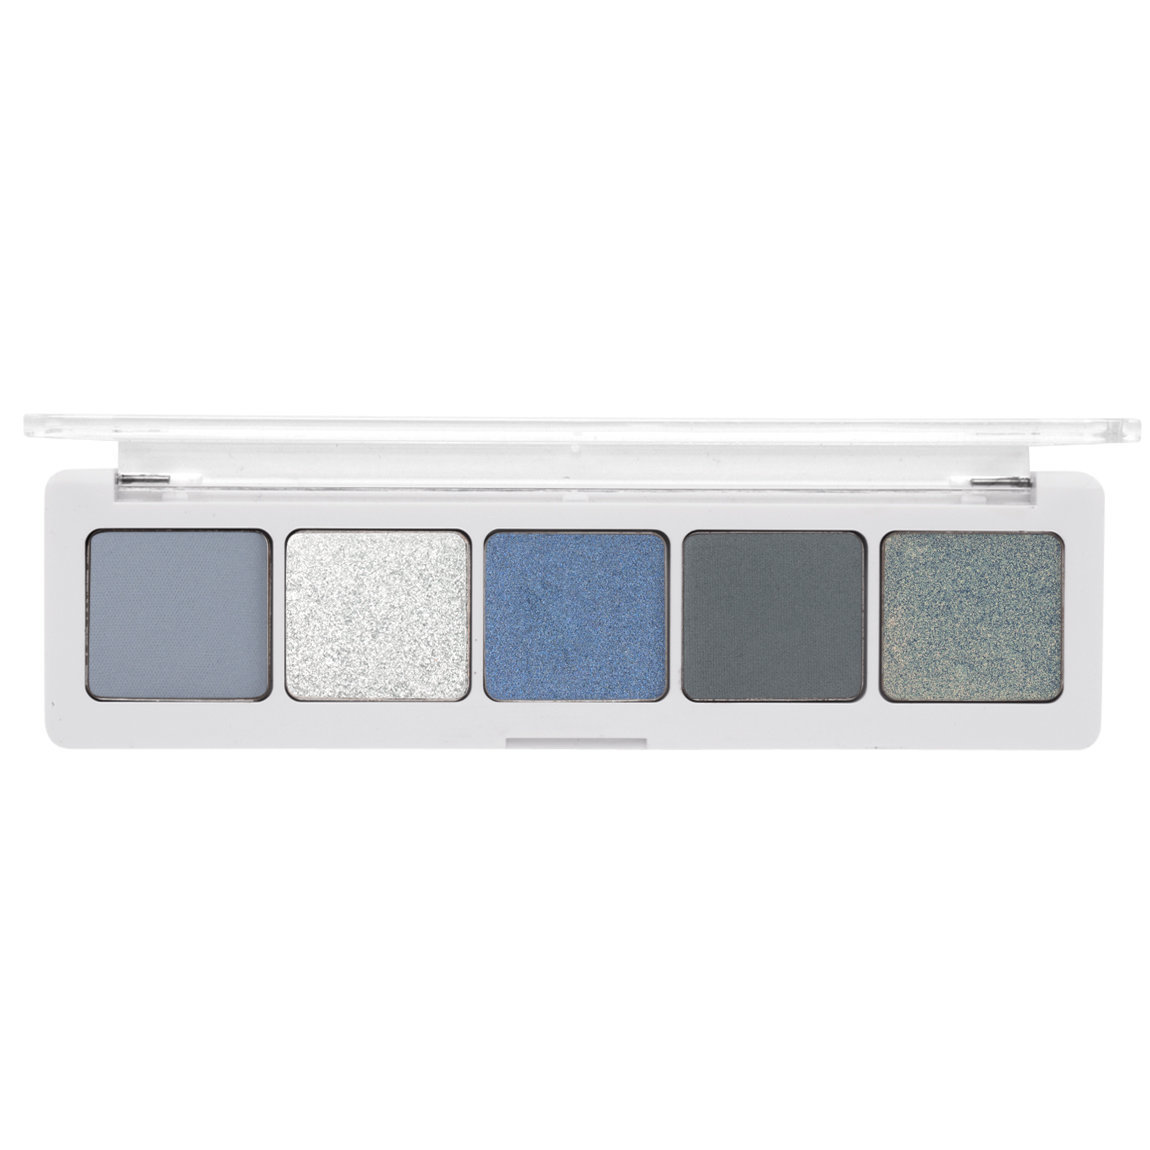 Natasha Denona Eyeshadow Palette 5 Palette 03 alternative view 1 - product swatch.